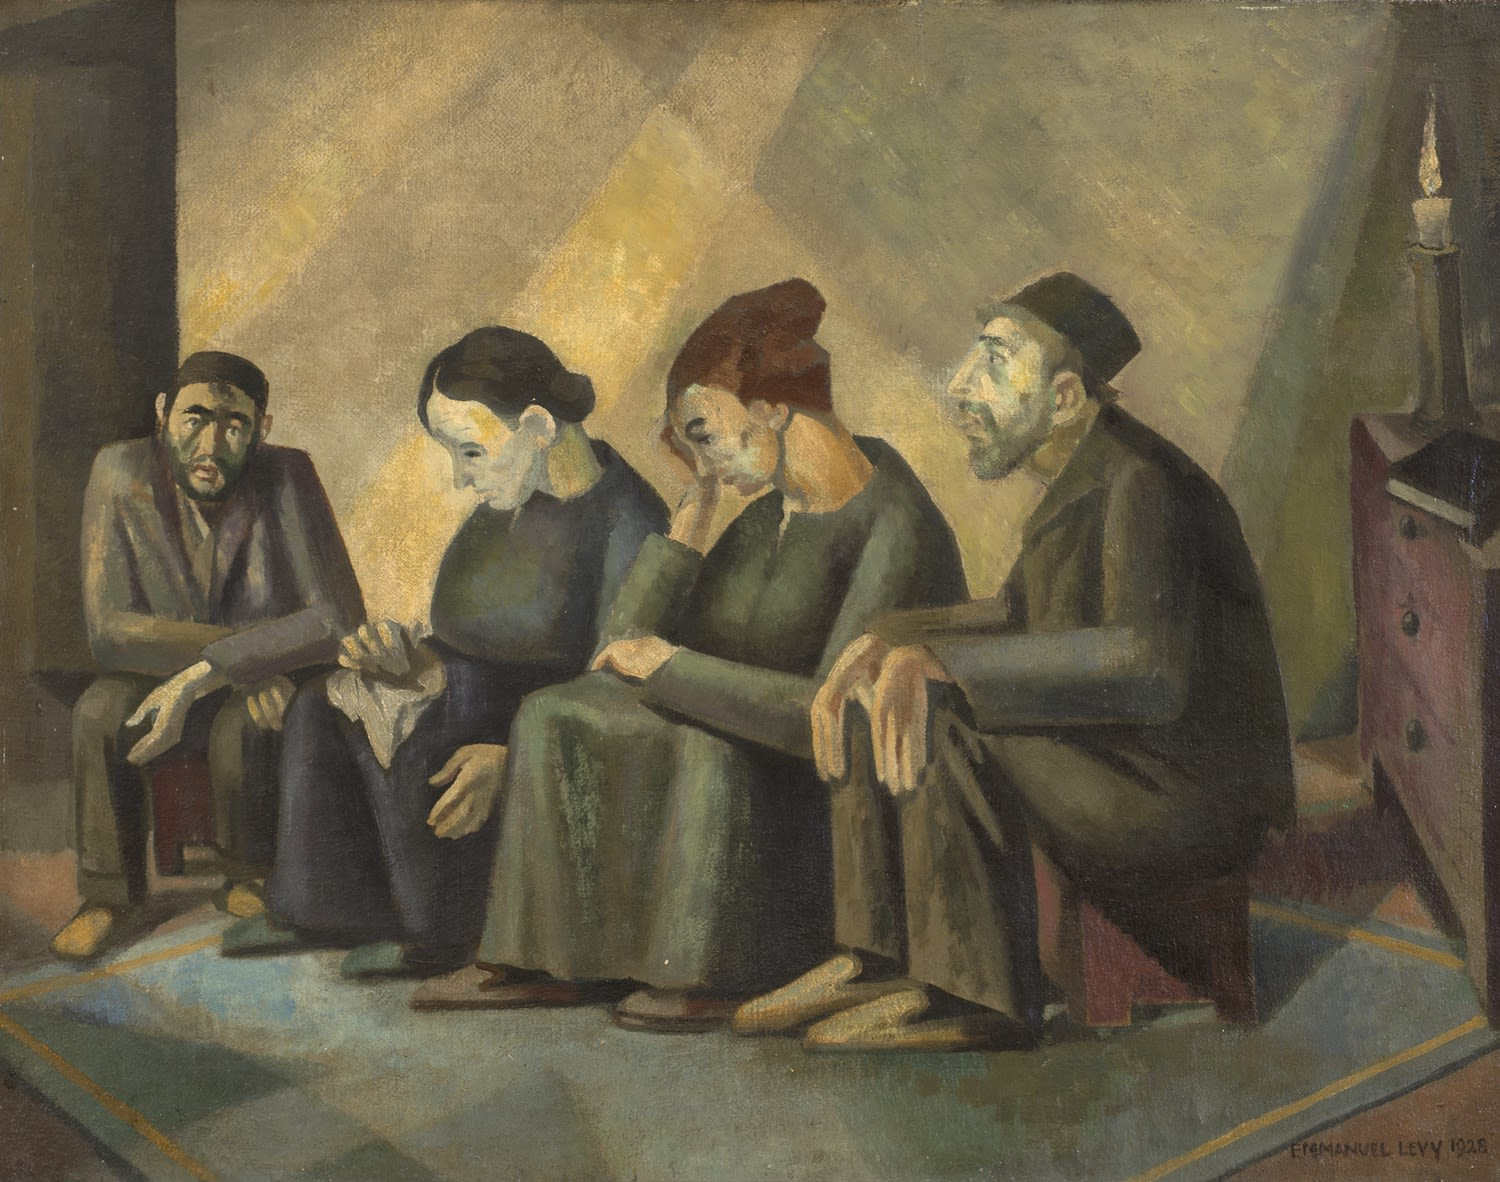 Emmanuel Levy (1900-1986) The Mourners (Sitting Shiva) 1928 Oil on canvas 72.5 x 91 cm Ben Uri Collection © Emmanuel Levy estate